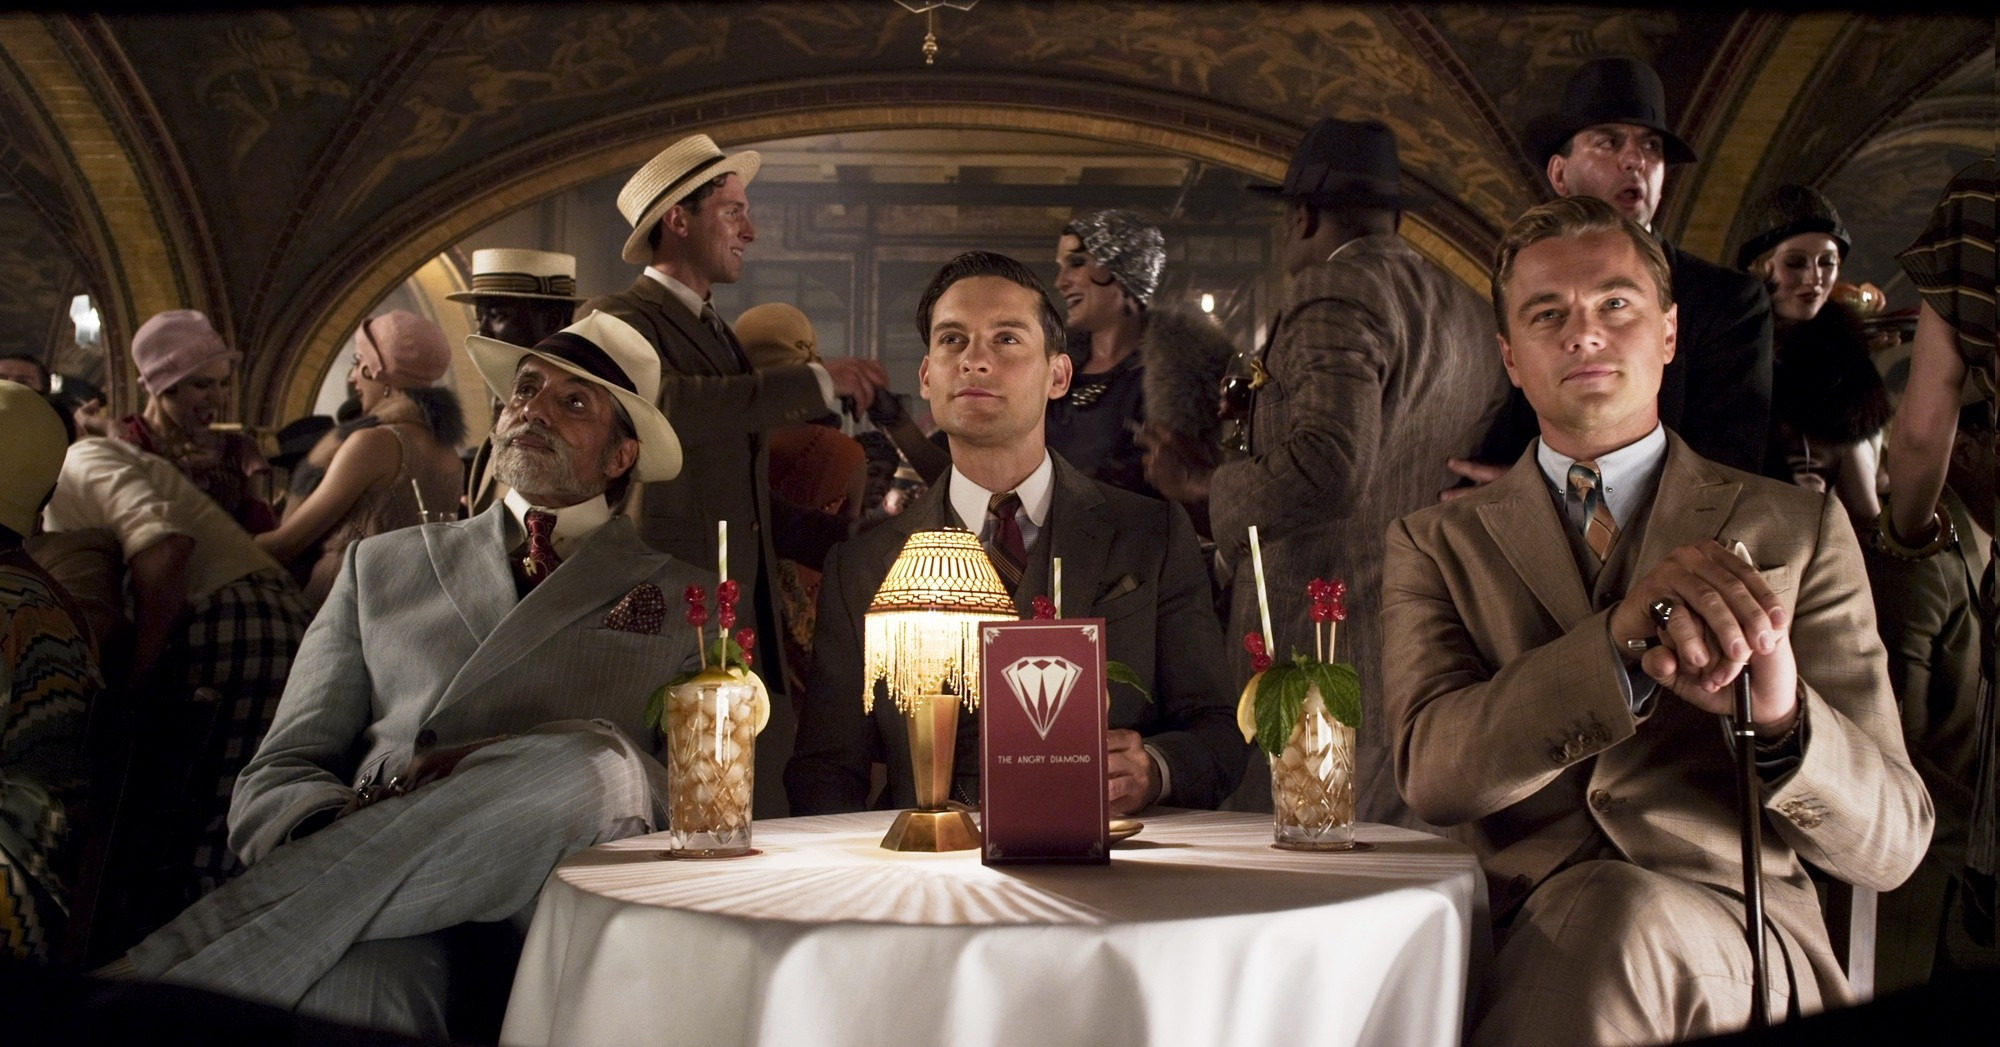 paradoxical role of women in the great gatsby In the great gatsby, fitzgerald depicts the conflicts and contradictions between men and women about society, family, love, and money, literally mirroring the patriarchal society constantly challenged by feminism in the.